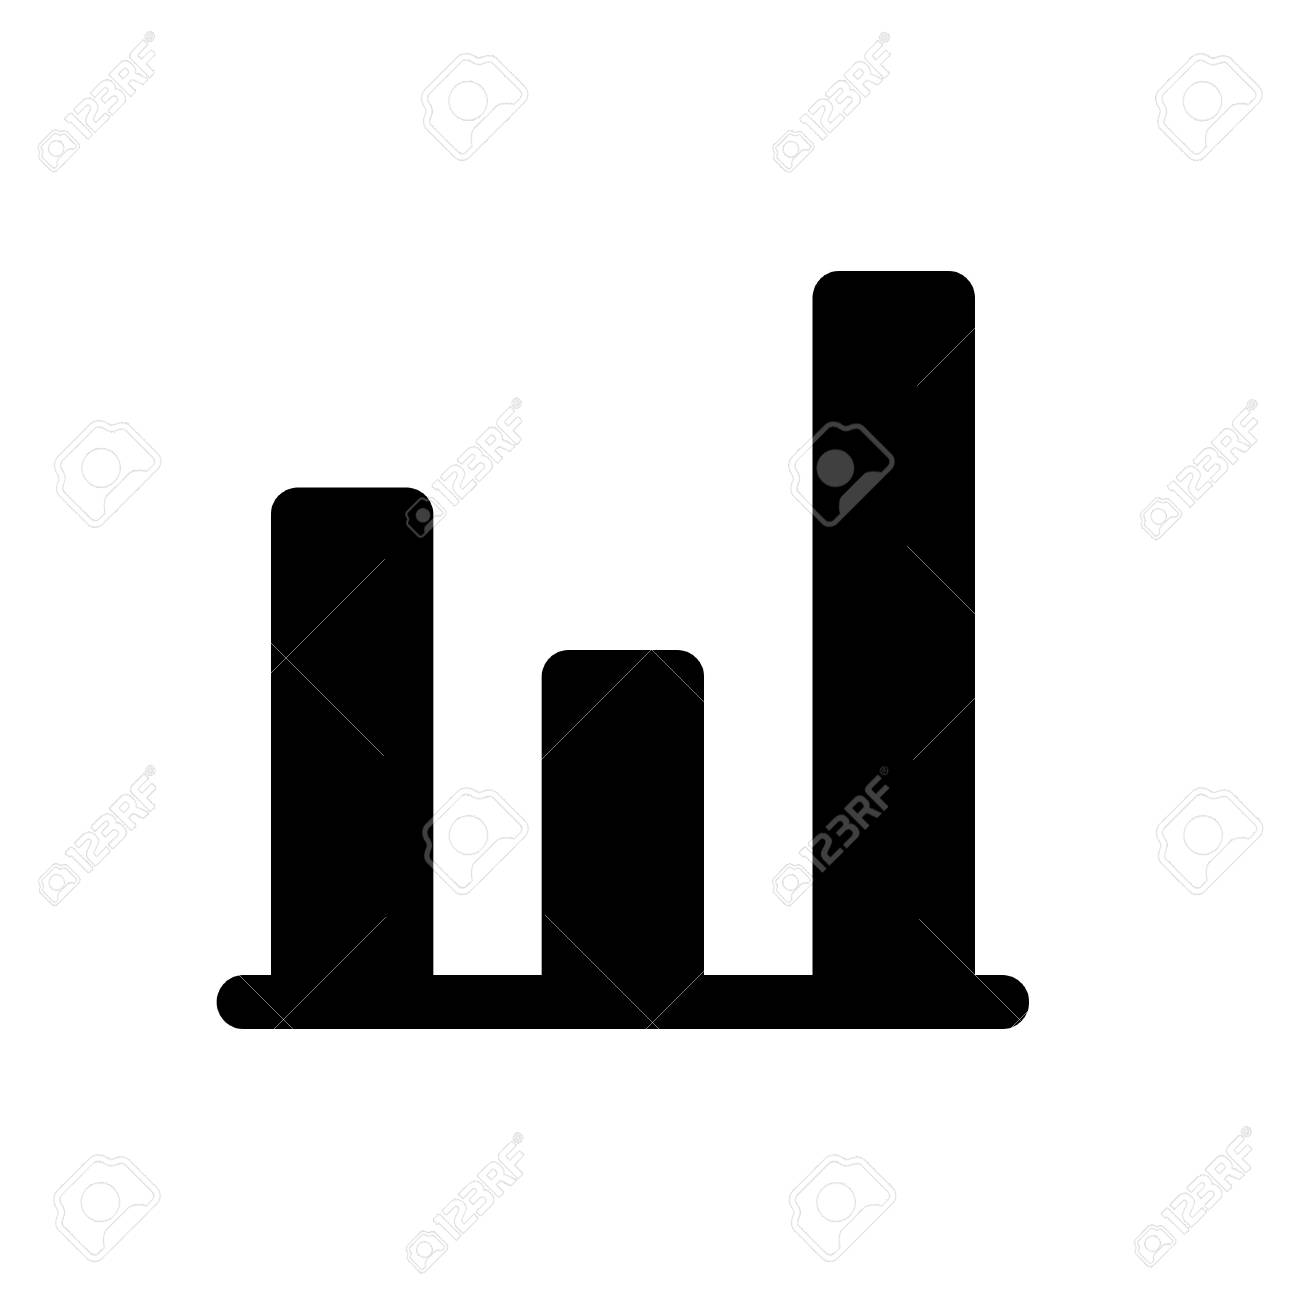 inconsistent bar graph royalty free cliparts, vectors, and stock